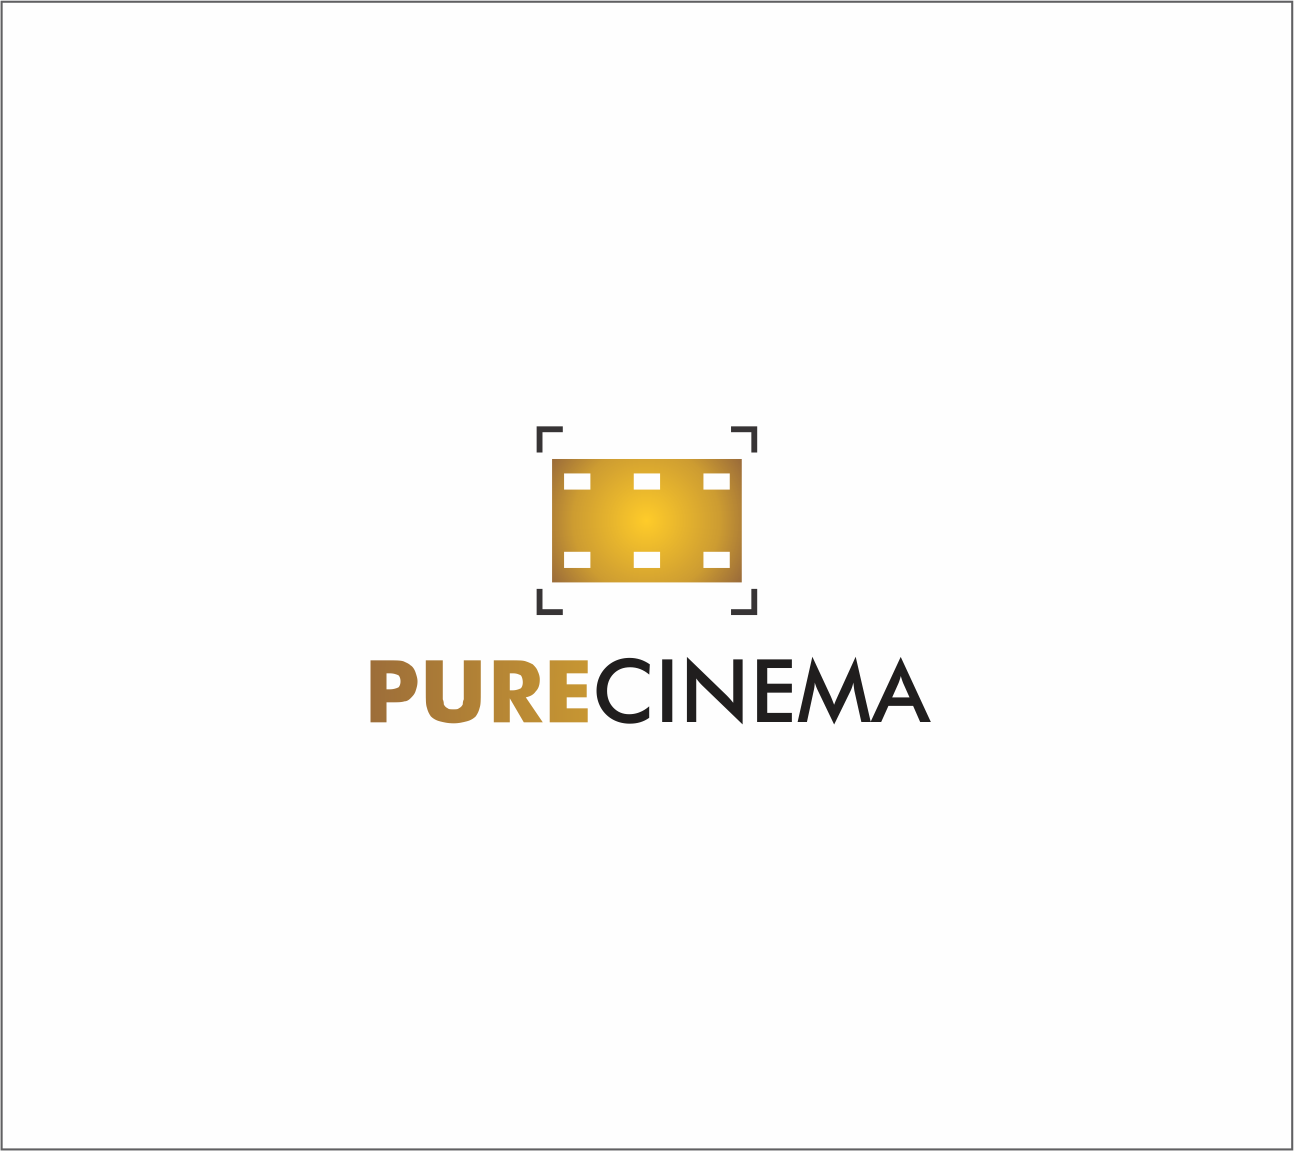 Logo Design by Armada Jamaluddin - Entry No. 48 in the Logo Design Contest Imaginative Logo Design for Pure Cinema.